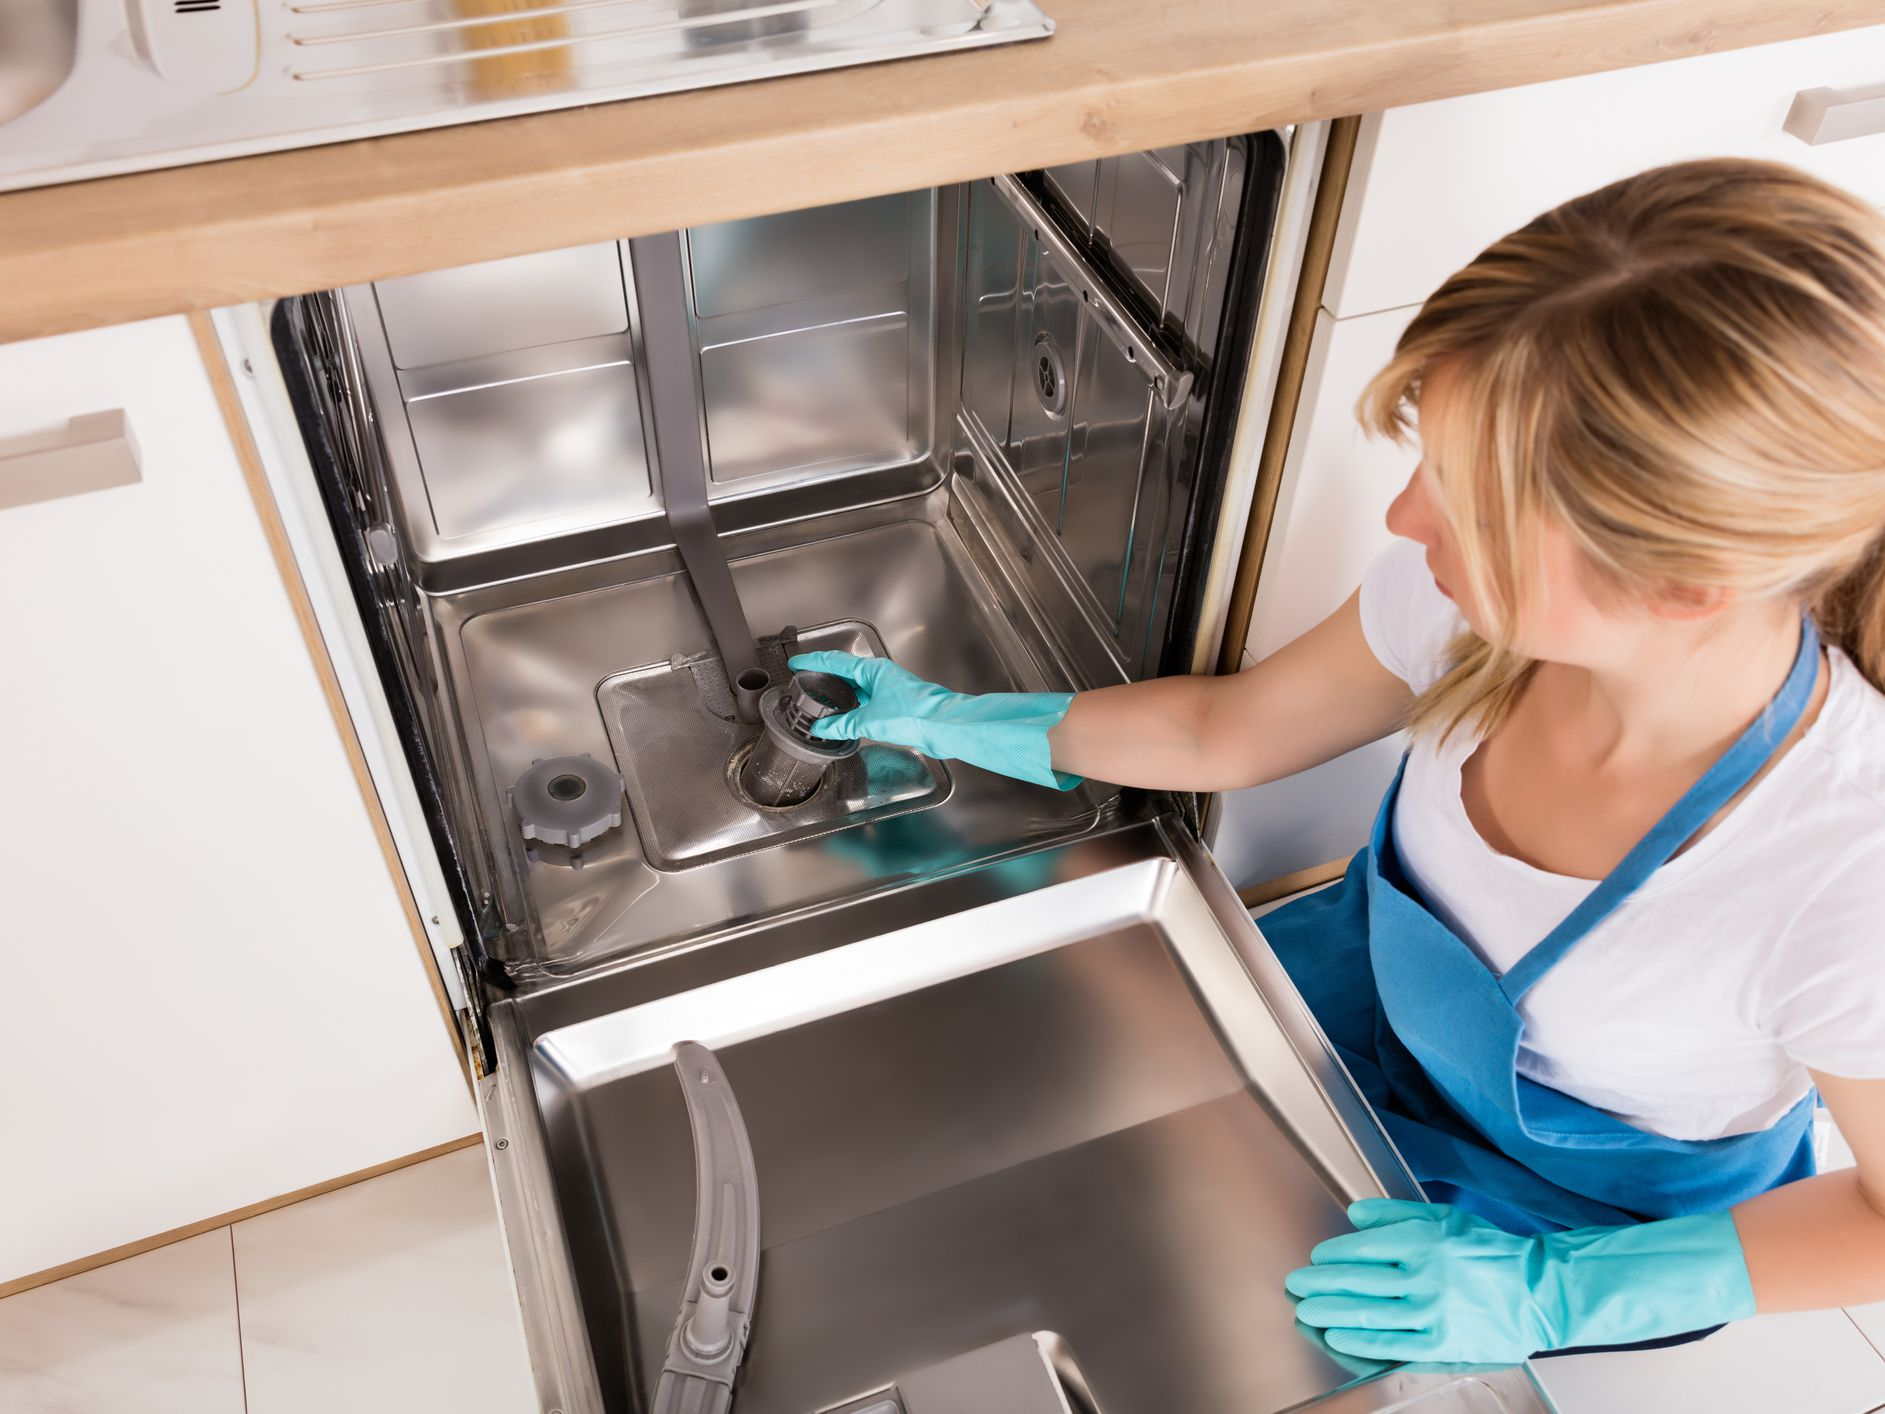 Tips to Fix a Dishwasher That Leaves Dirty Dishes